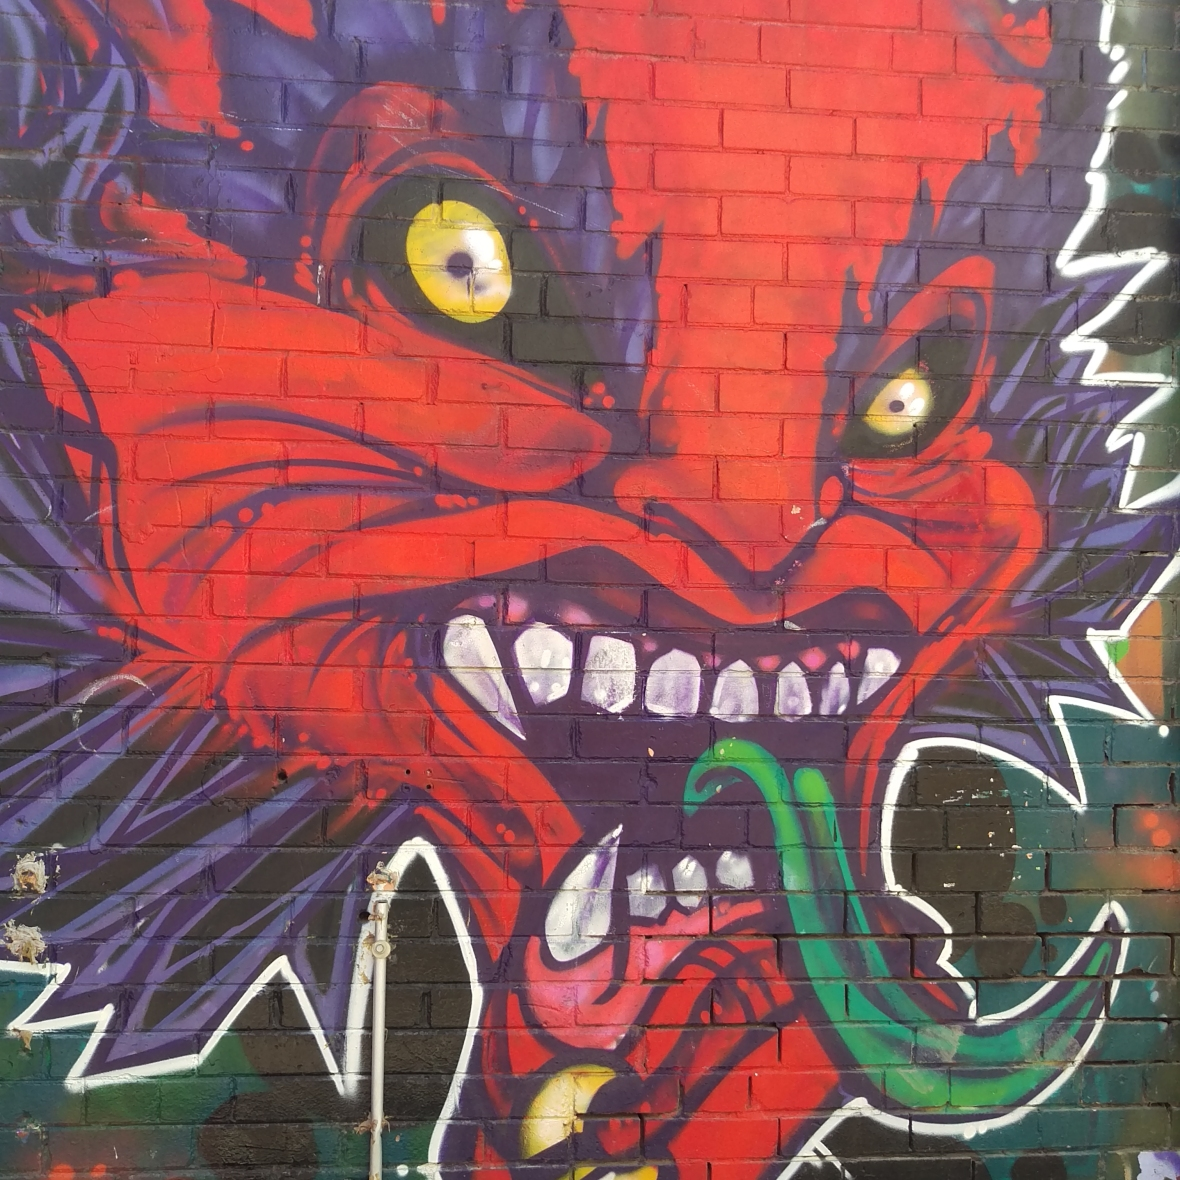 Kensington Market - Devil Graffiti